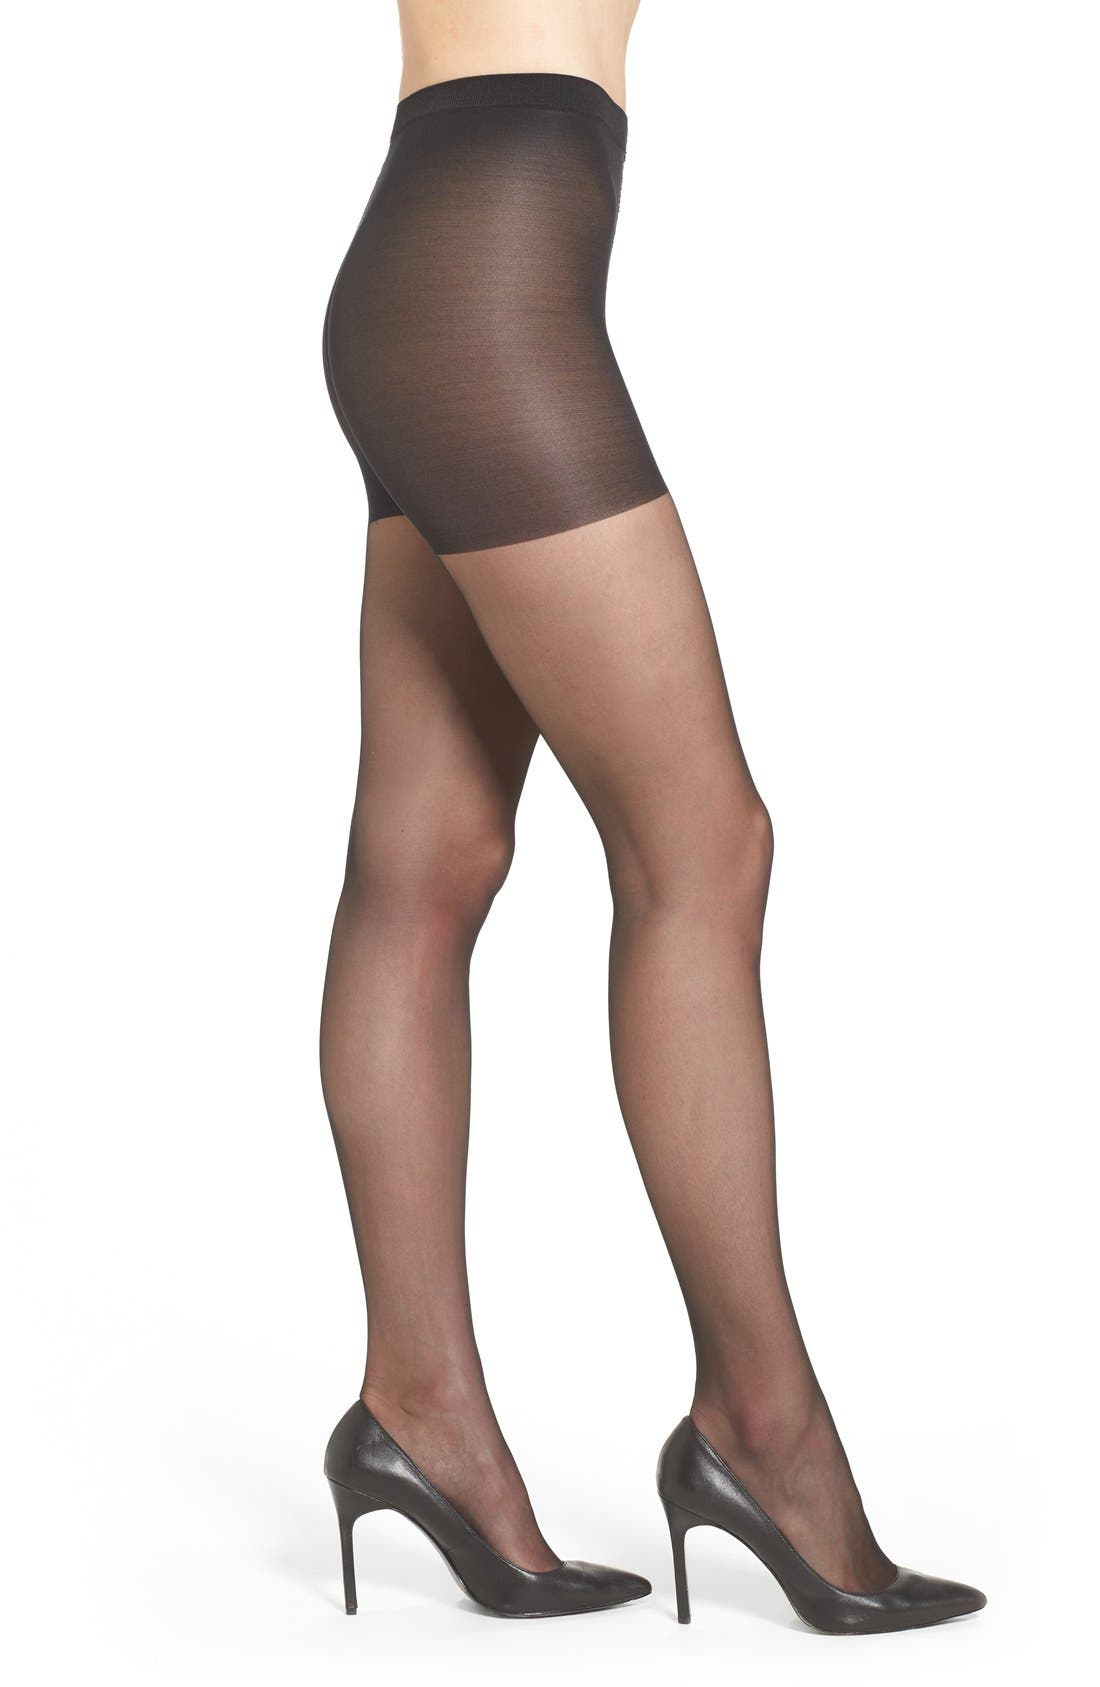 Wolford Individual 10 Control Top Pantyhose